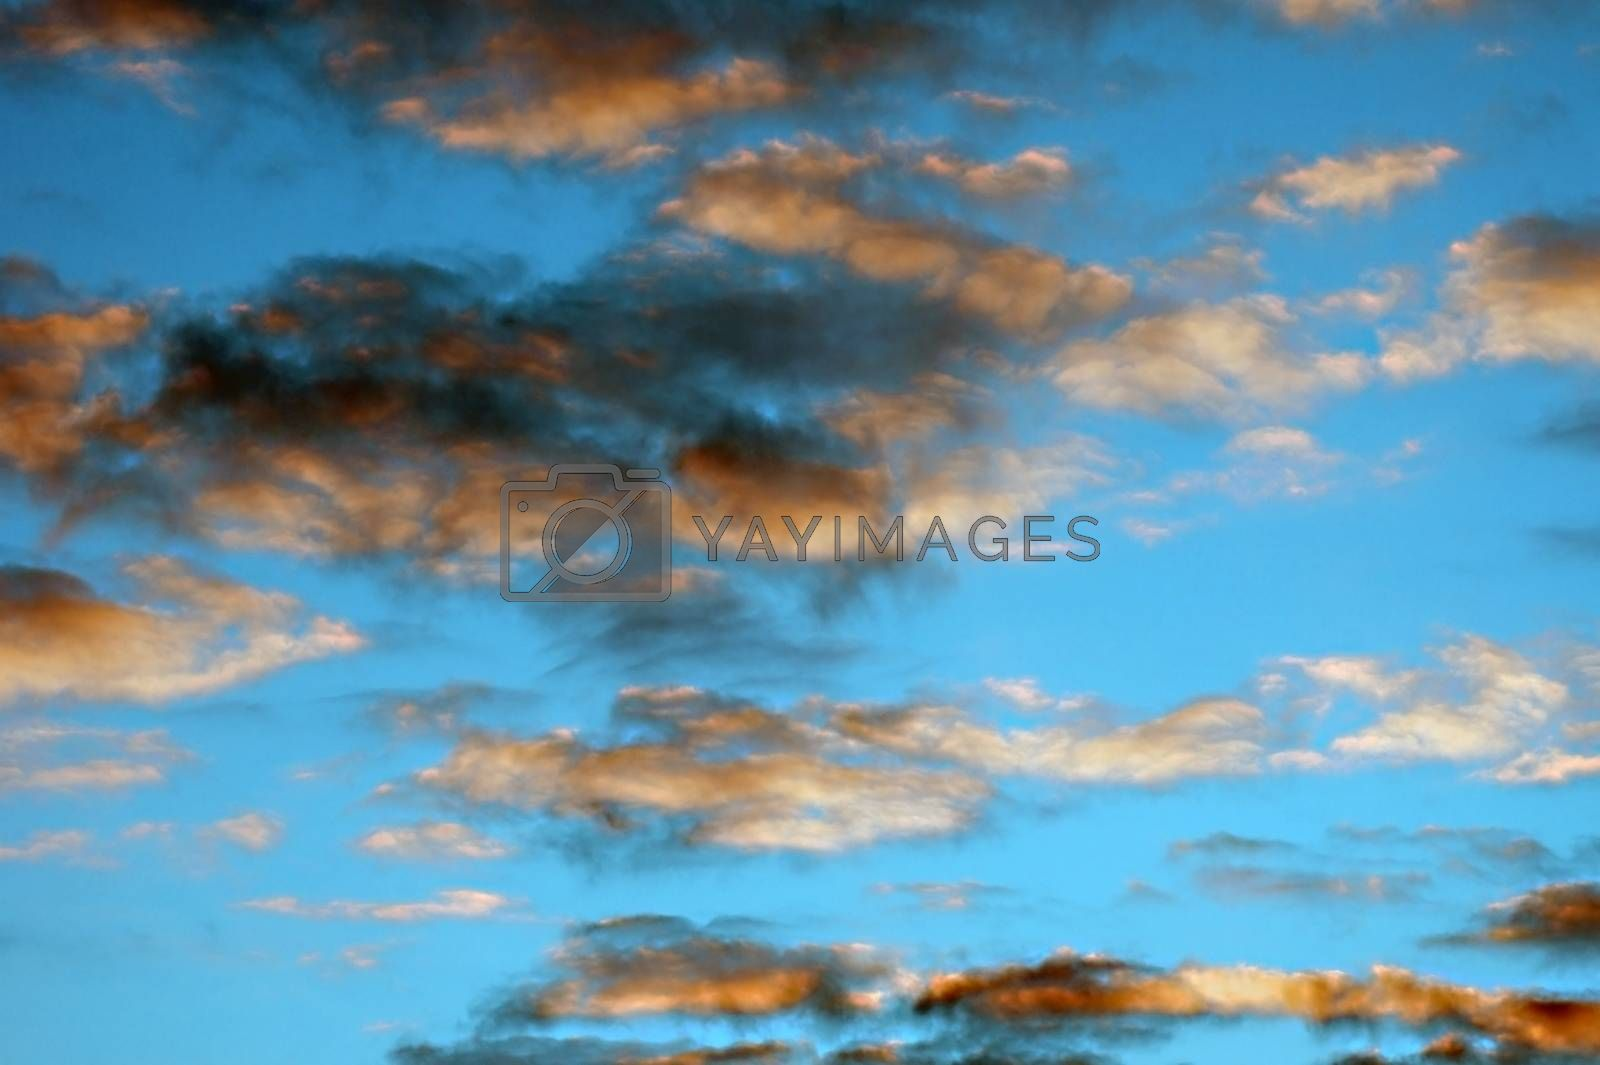 Dark clouds and black smoke mingle in front of a bright blue sky, an abstract contrast.